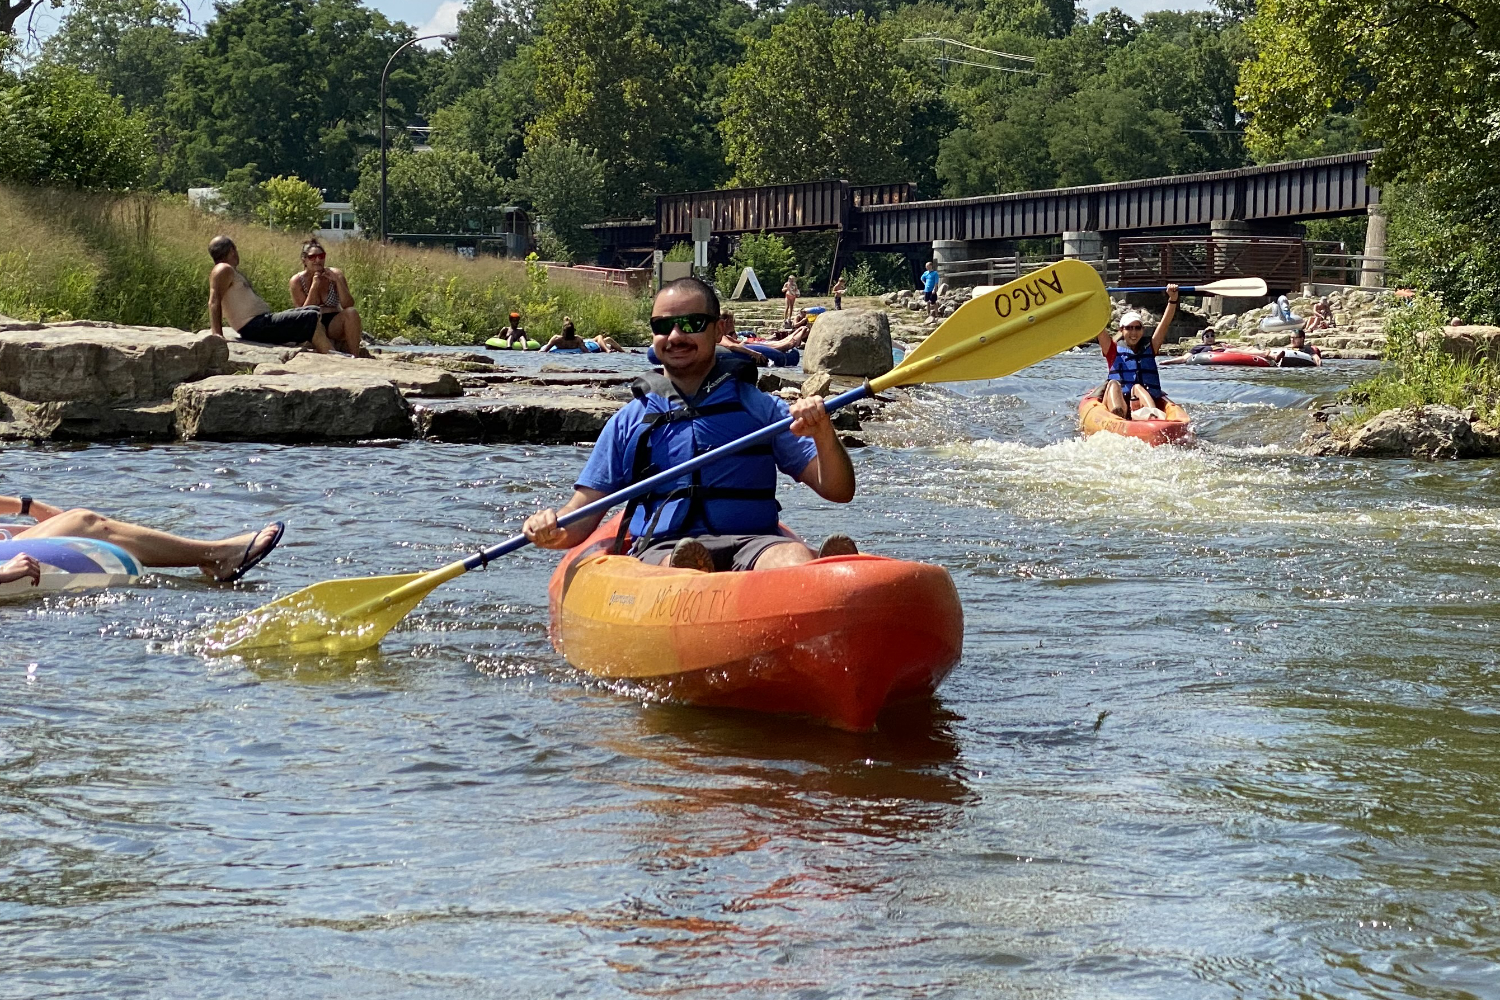 kayaking down the river in summer